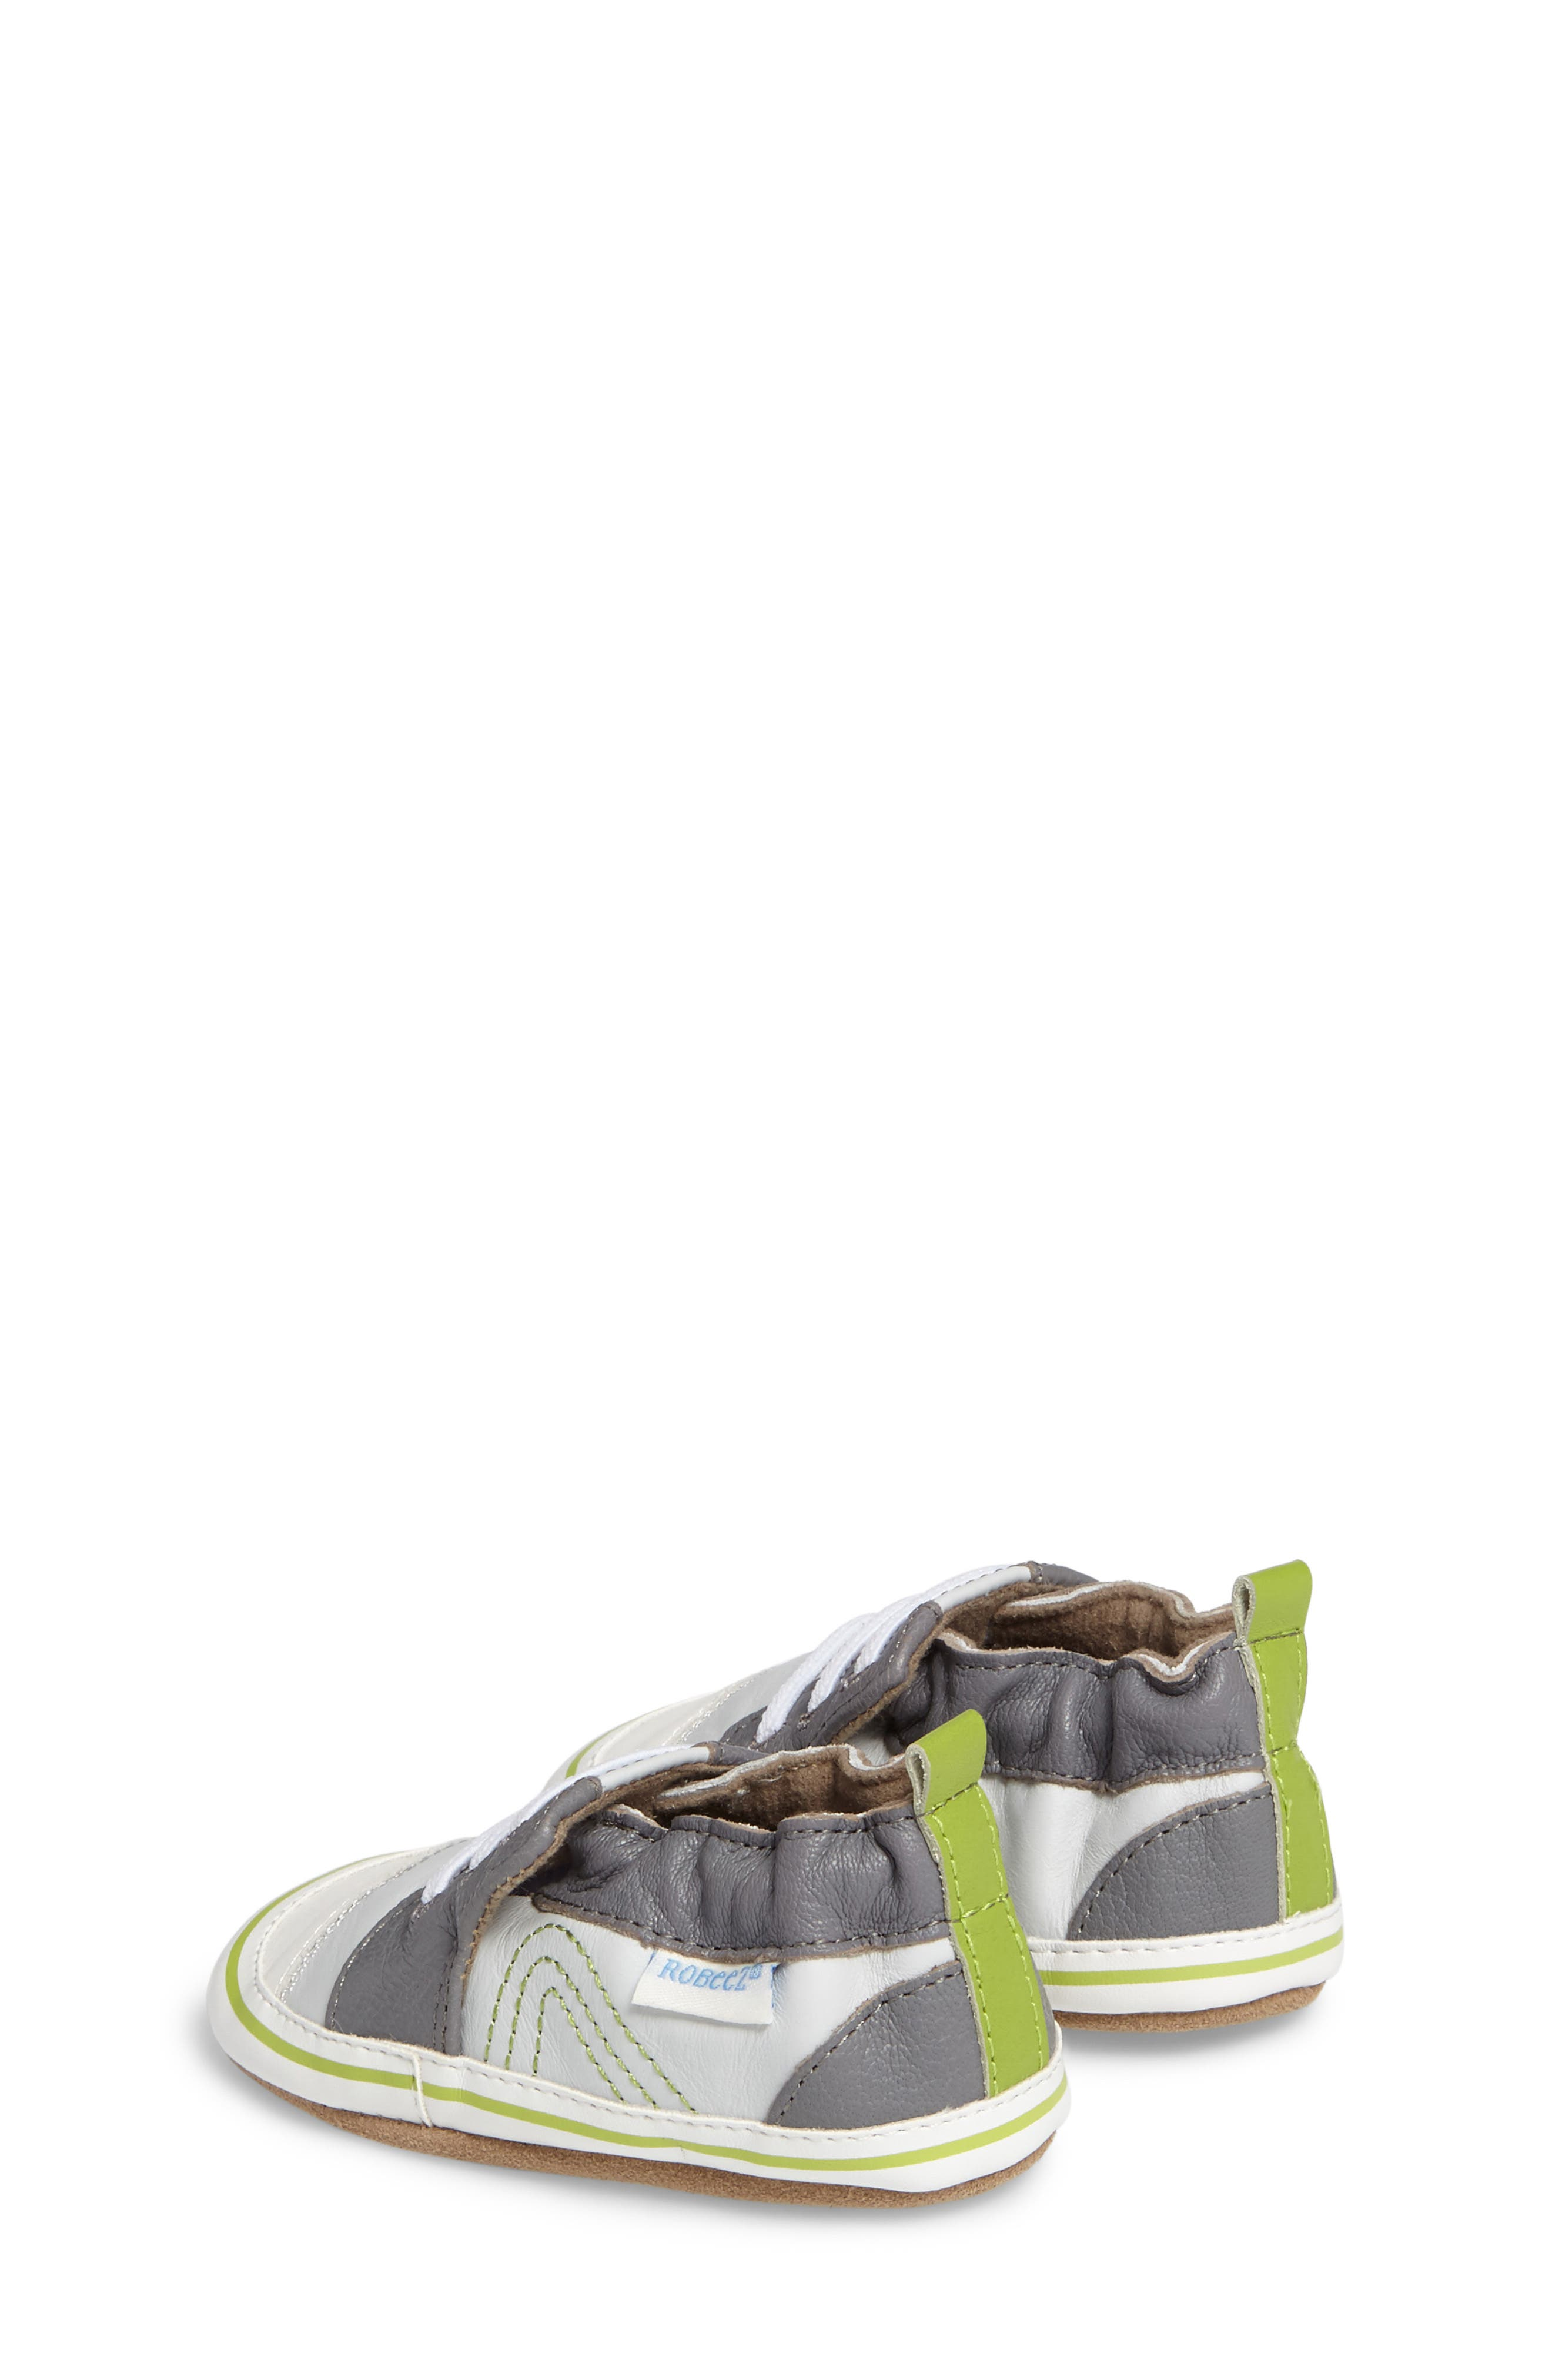 Trendy Trainer Sneaker Crib Shoe,                             Alternate thumbnail 2, color,                             Grey Leather